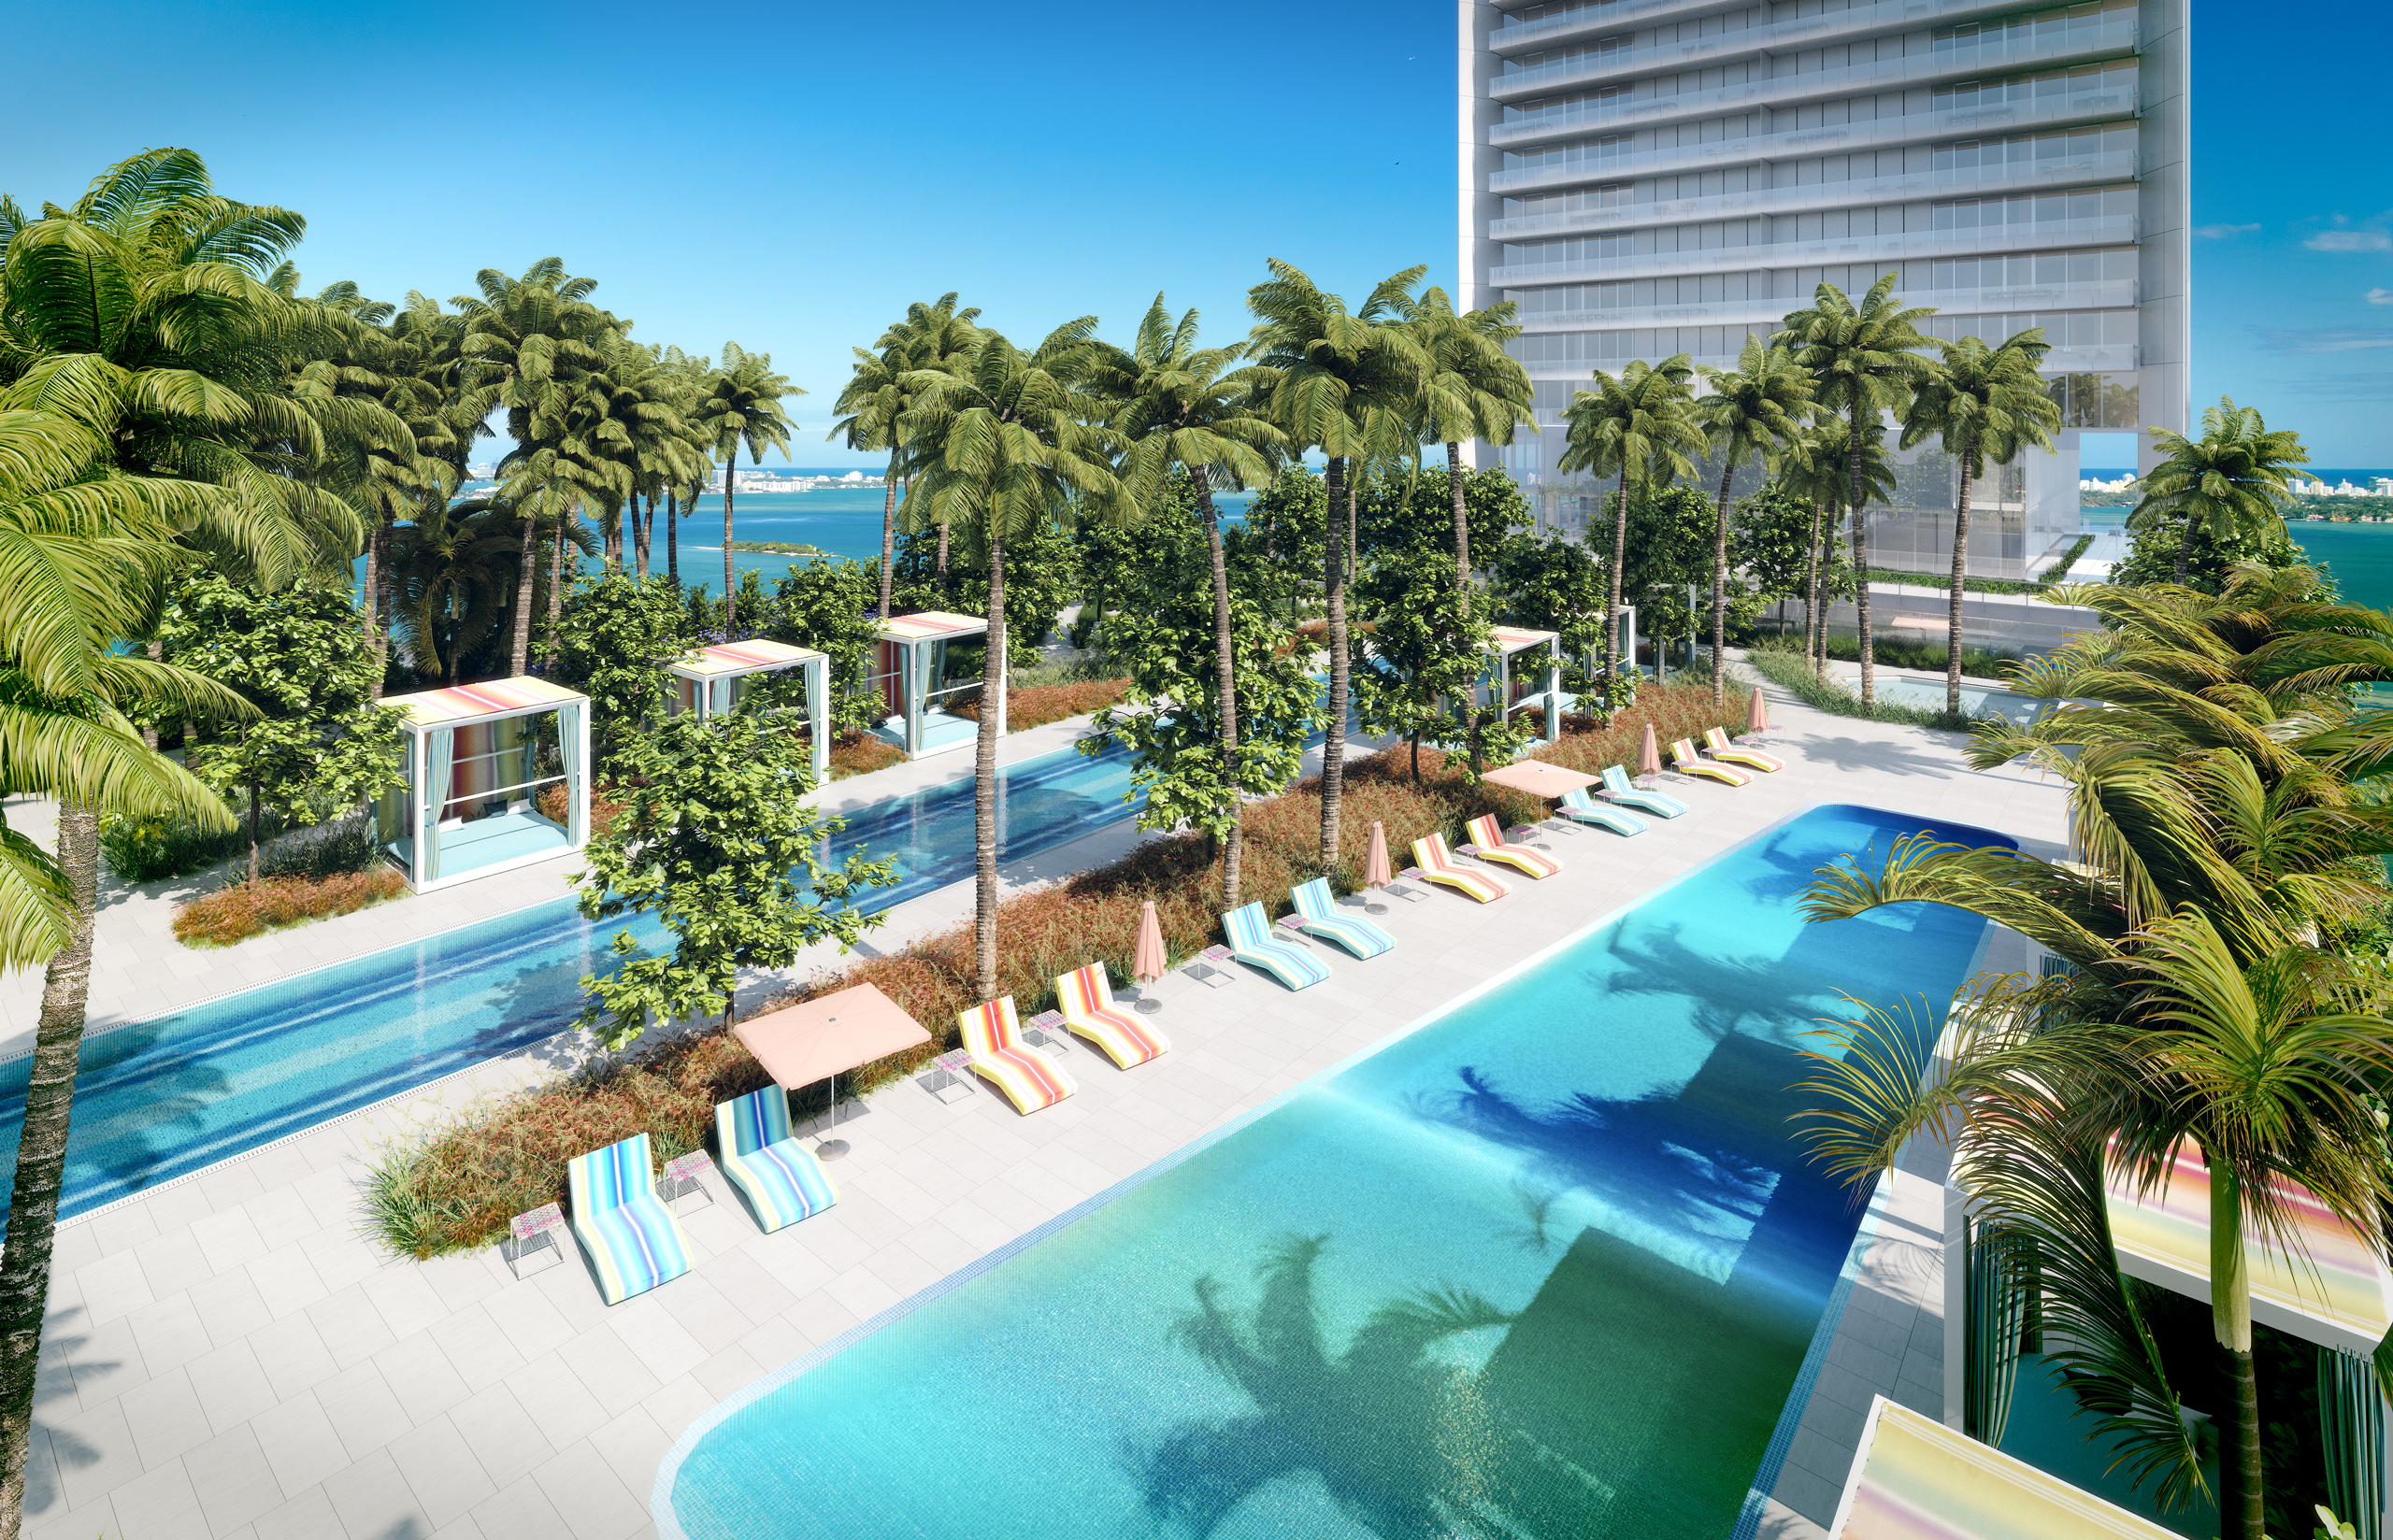 Exterior view of Missoni Baia residence outdoor pool deck with lounge chairs and palm trees. Overlooks the ocean in Miami.